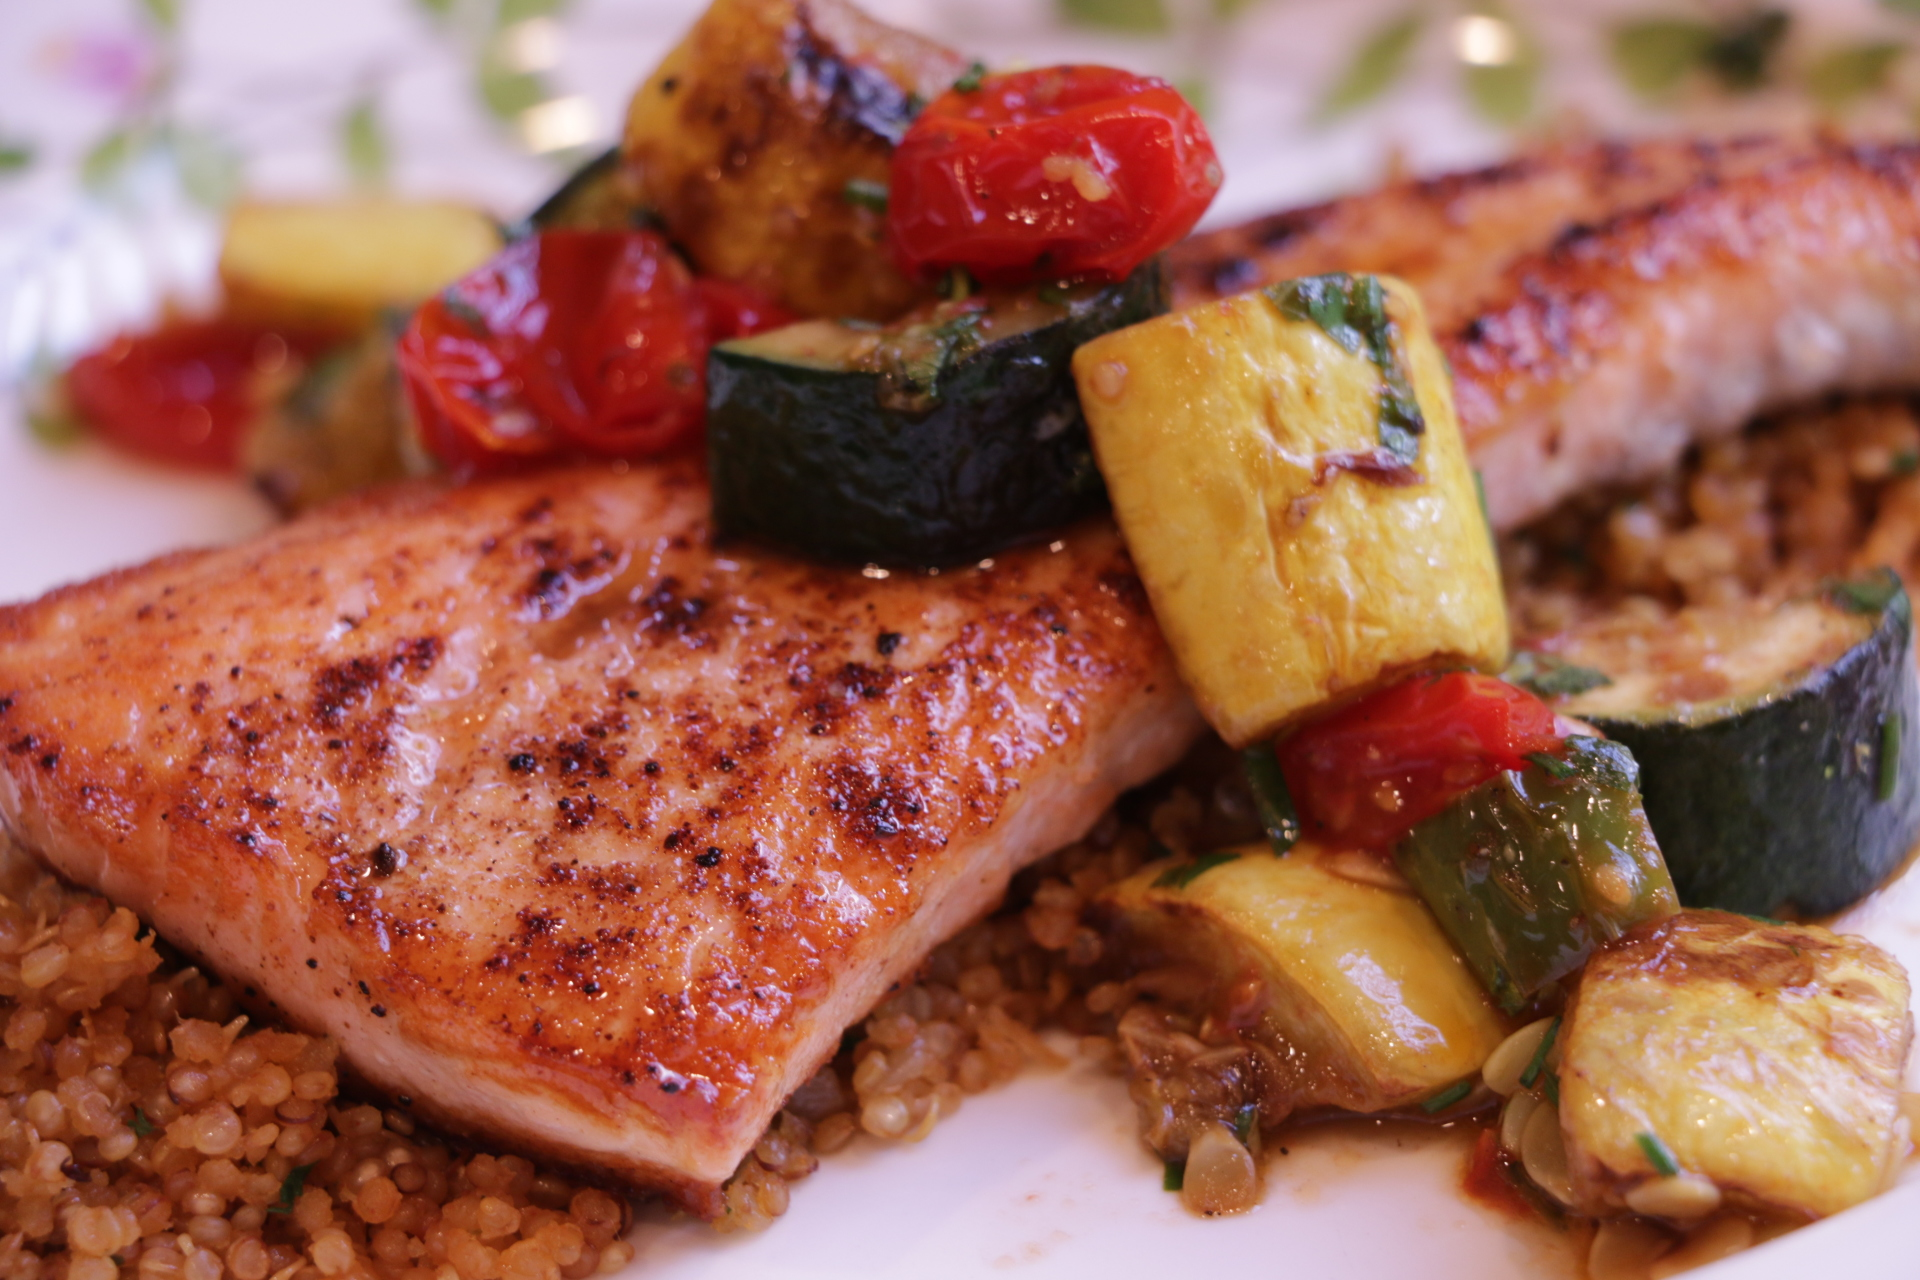 Dinner is Served - Costco's Atlantic Salmon with Sauteed Vegetables and Quinoa